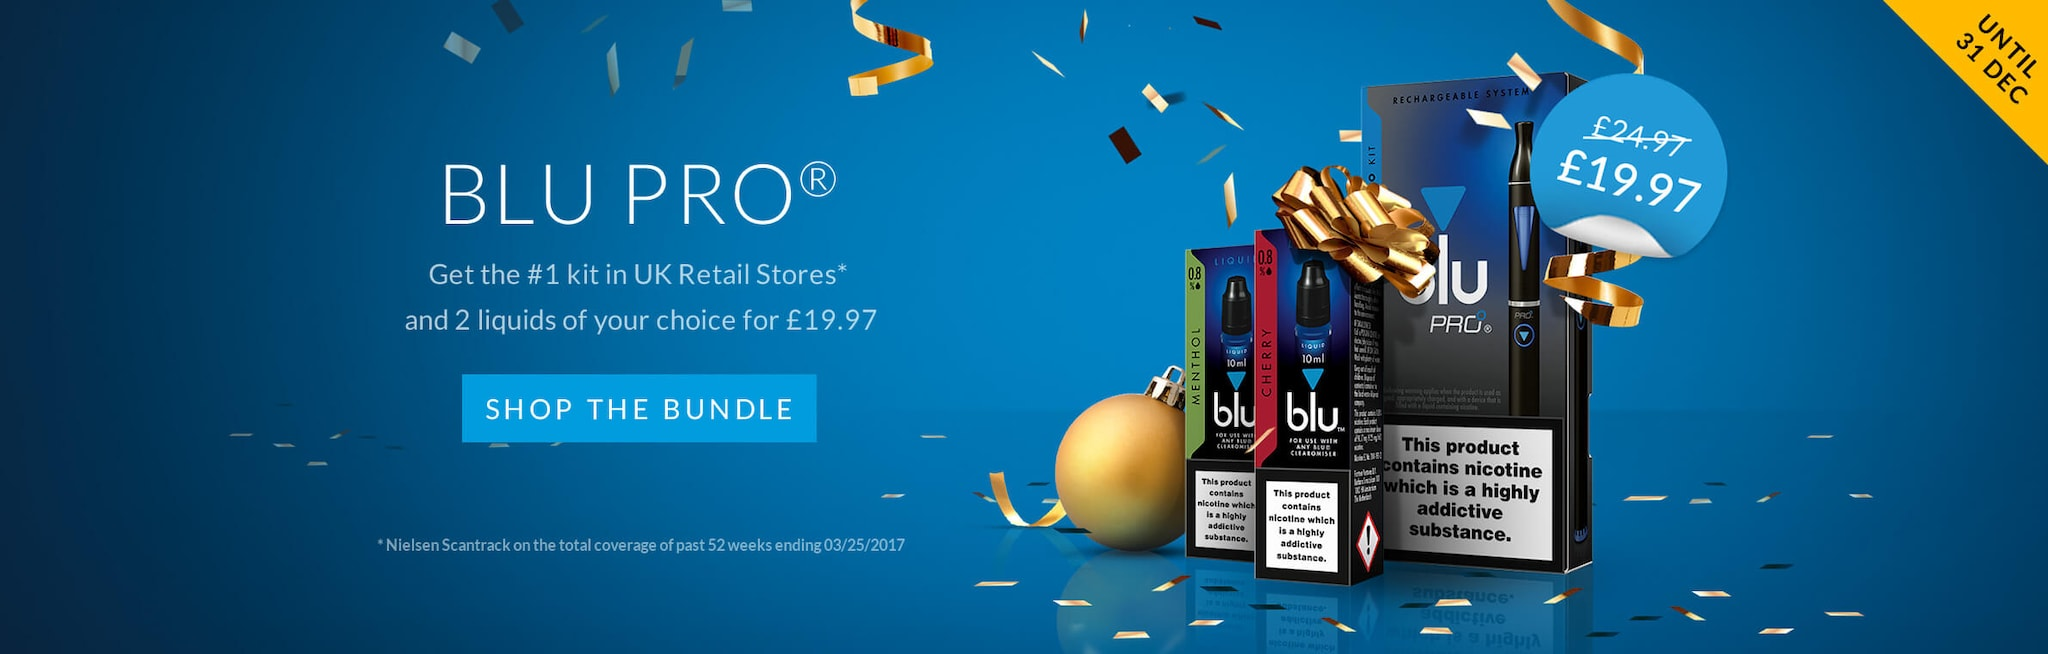 blu e cigarettes, e-liquids & vaping kits | blu UK